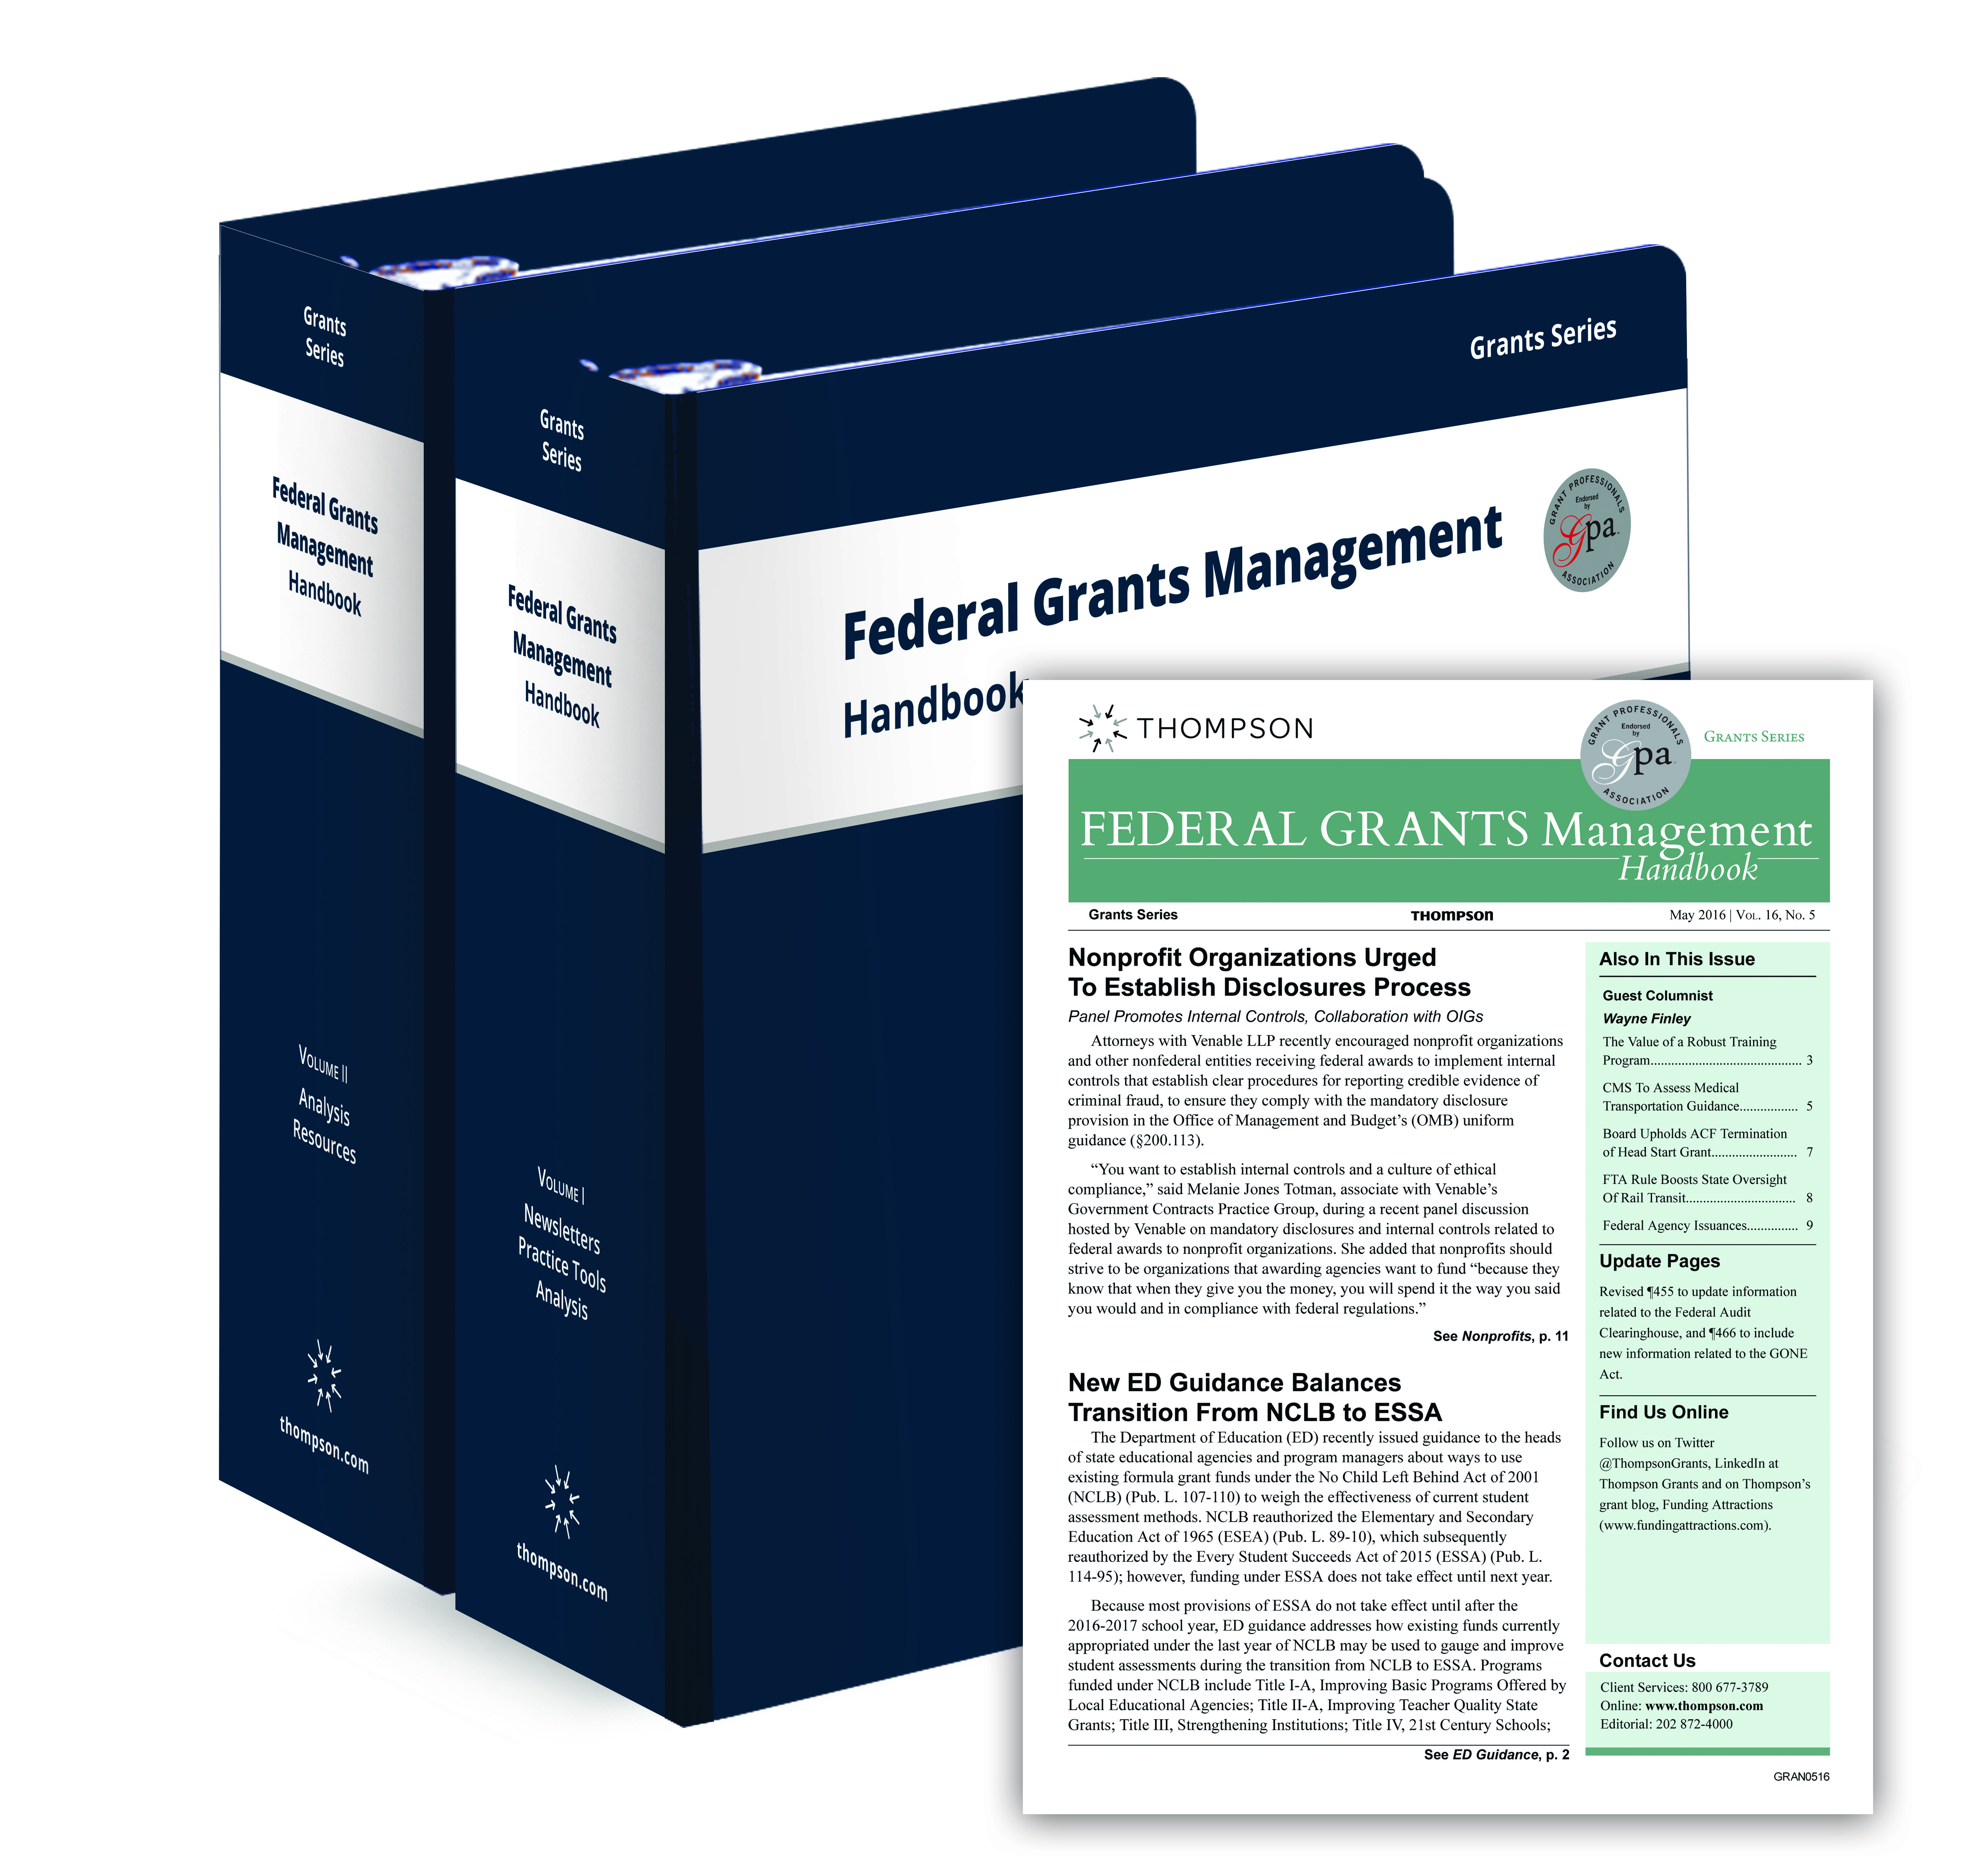 Technology Management Image: Federal Grants Management Handbook